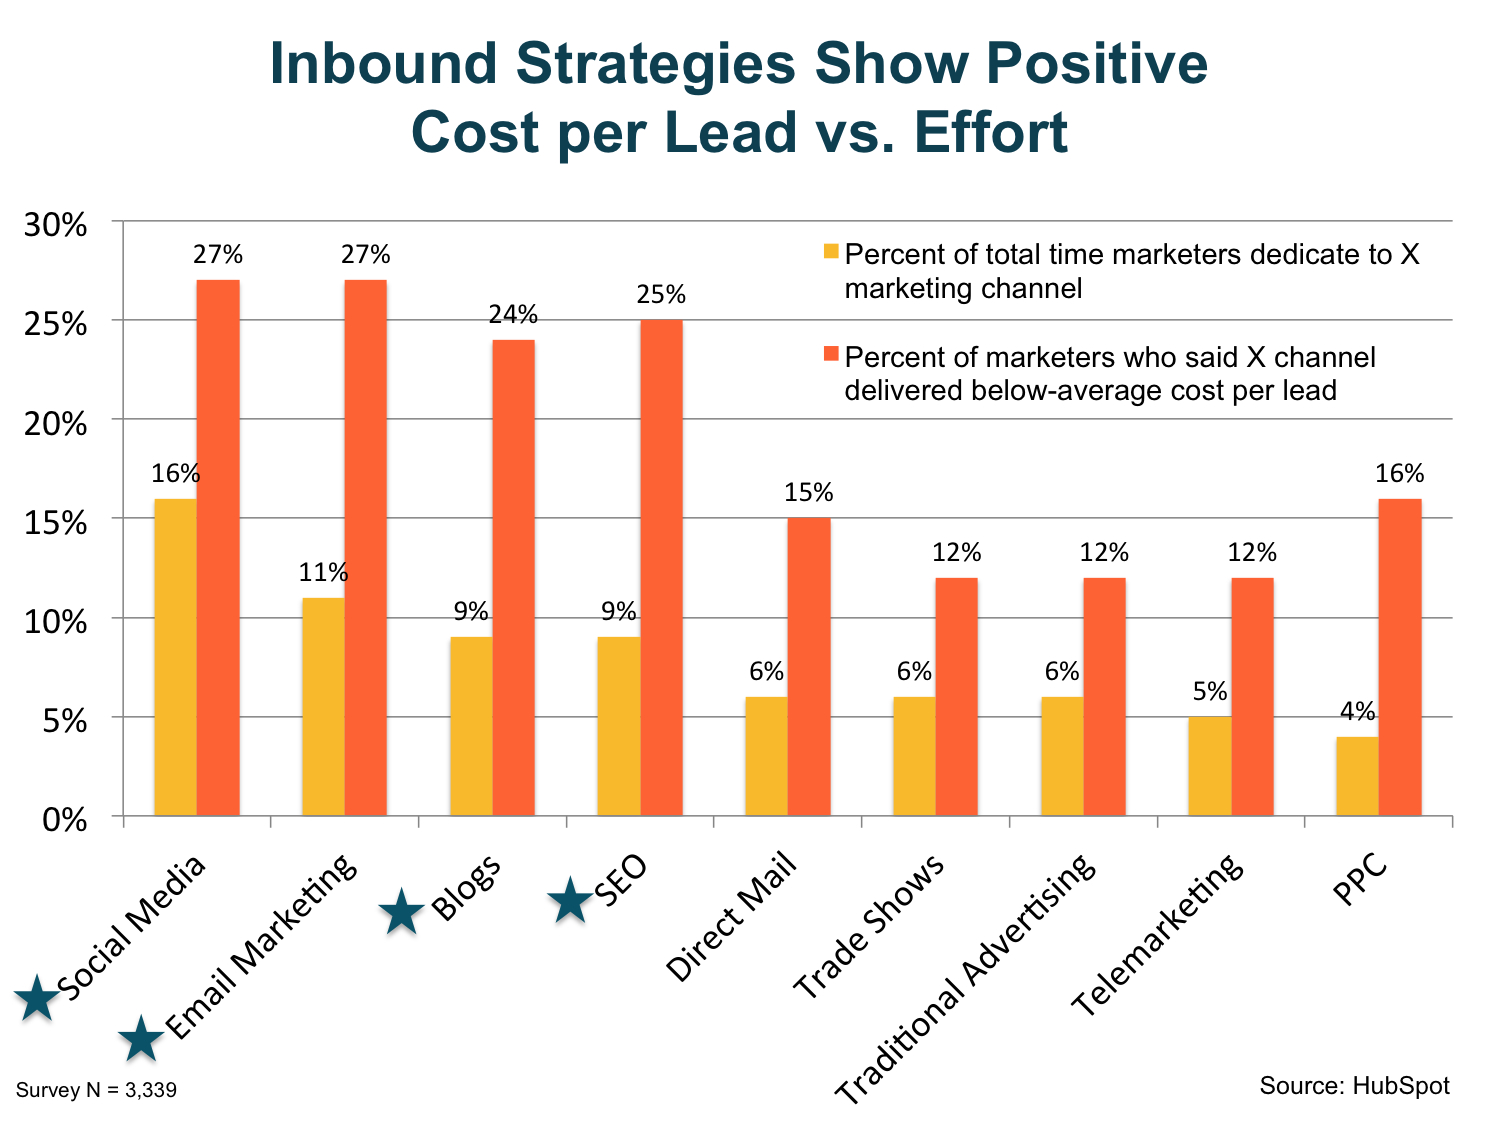 inbound_strategies_show_positive_cost_per_lead_vs_effort